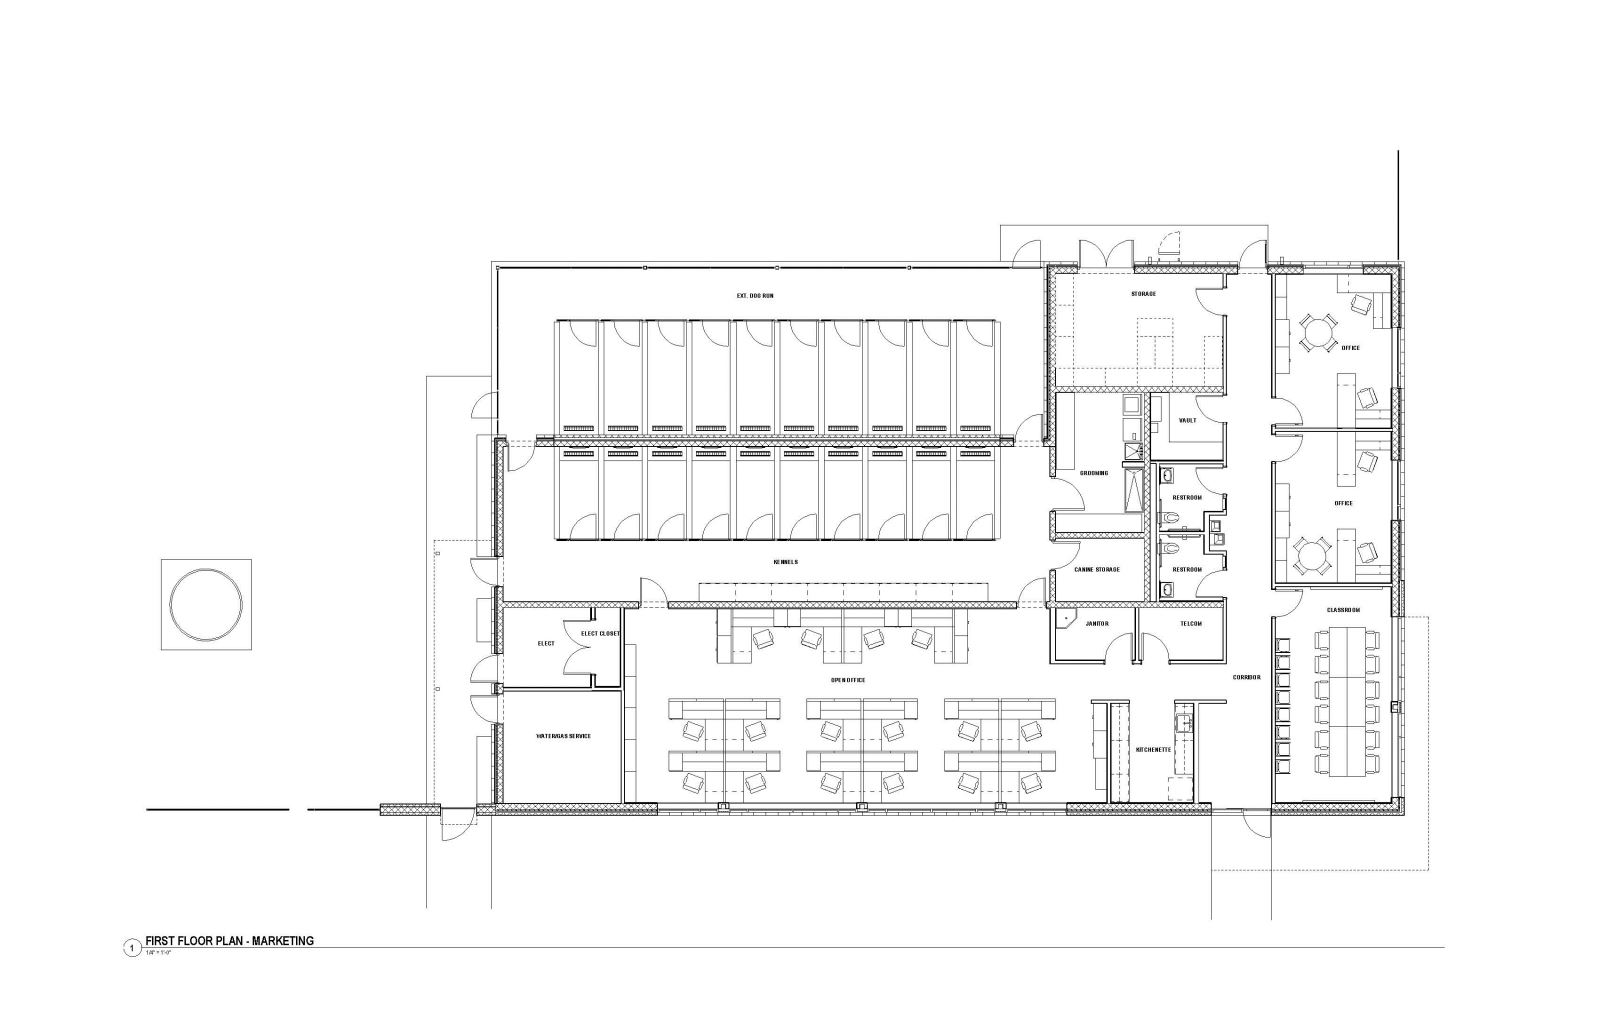 MASP & PSTA Project 3: Public Safety Training Academy - PSTA Canine Training Building Floor Plan